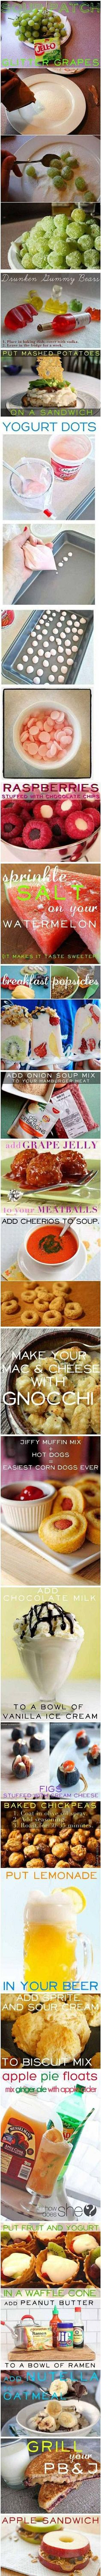 A collection of 23 cool (yet simple) food hacks you might not have known about.